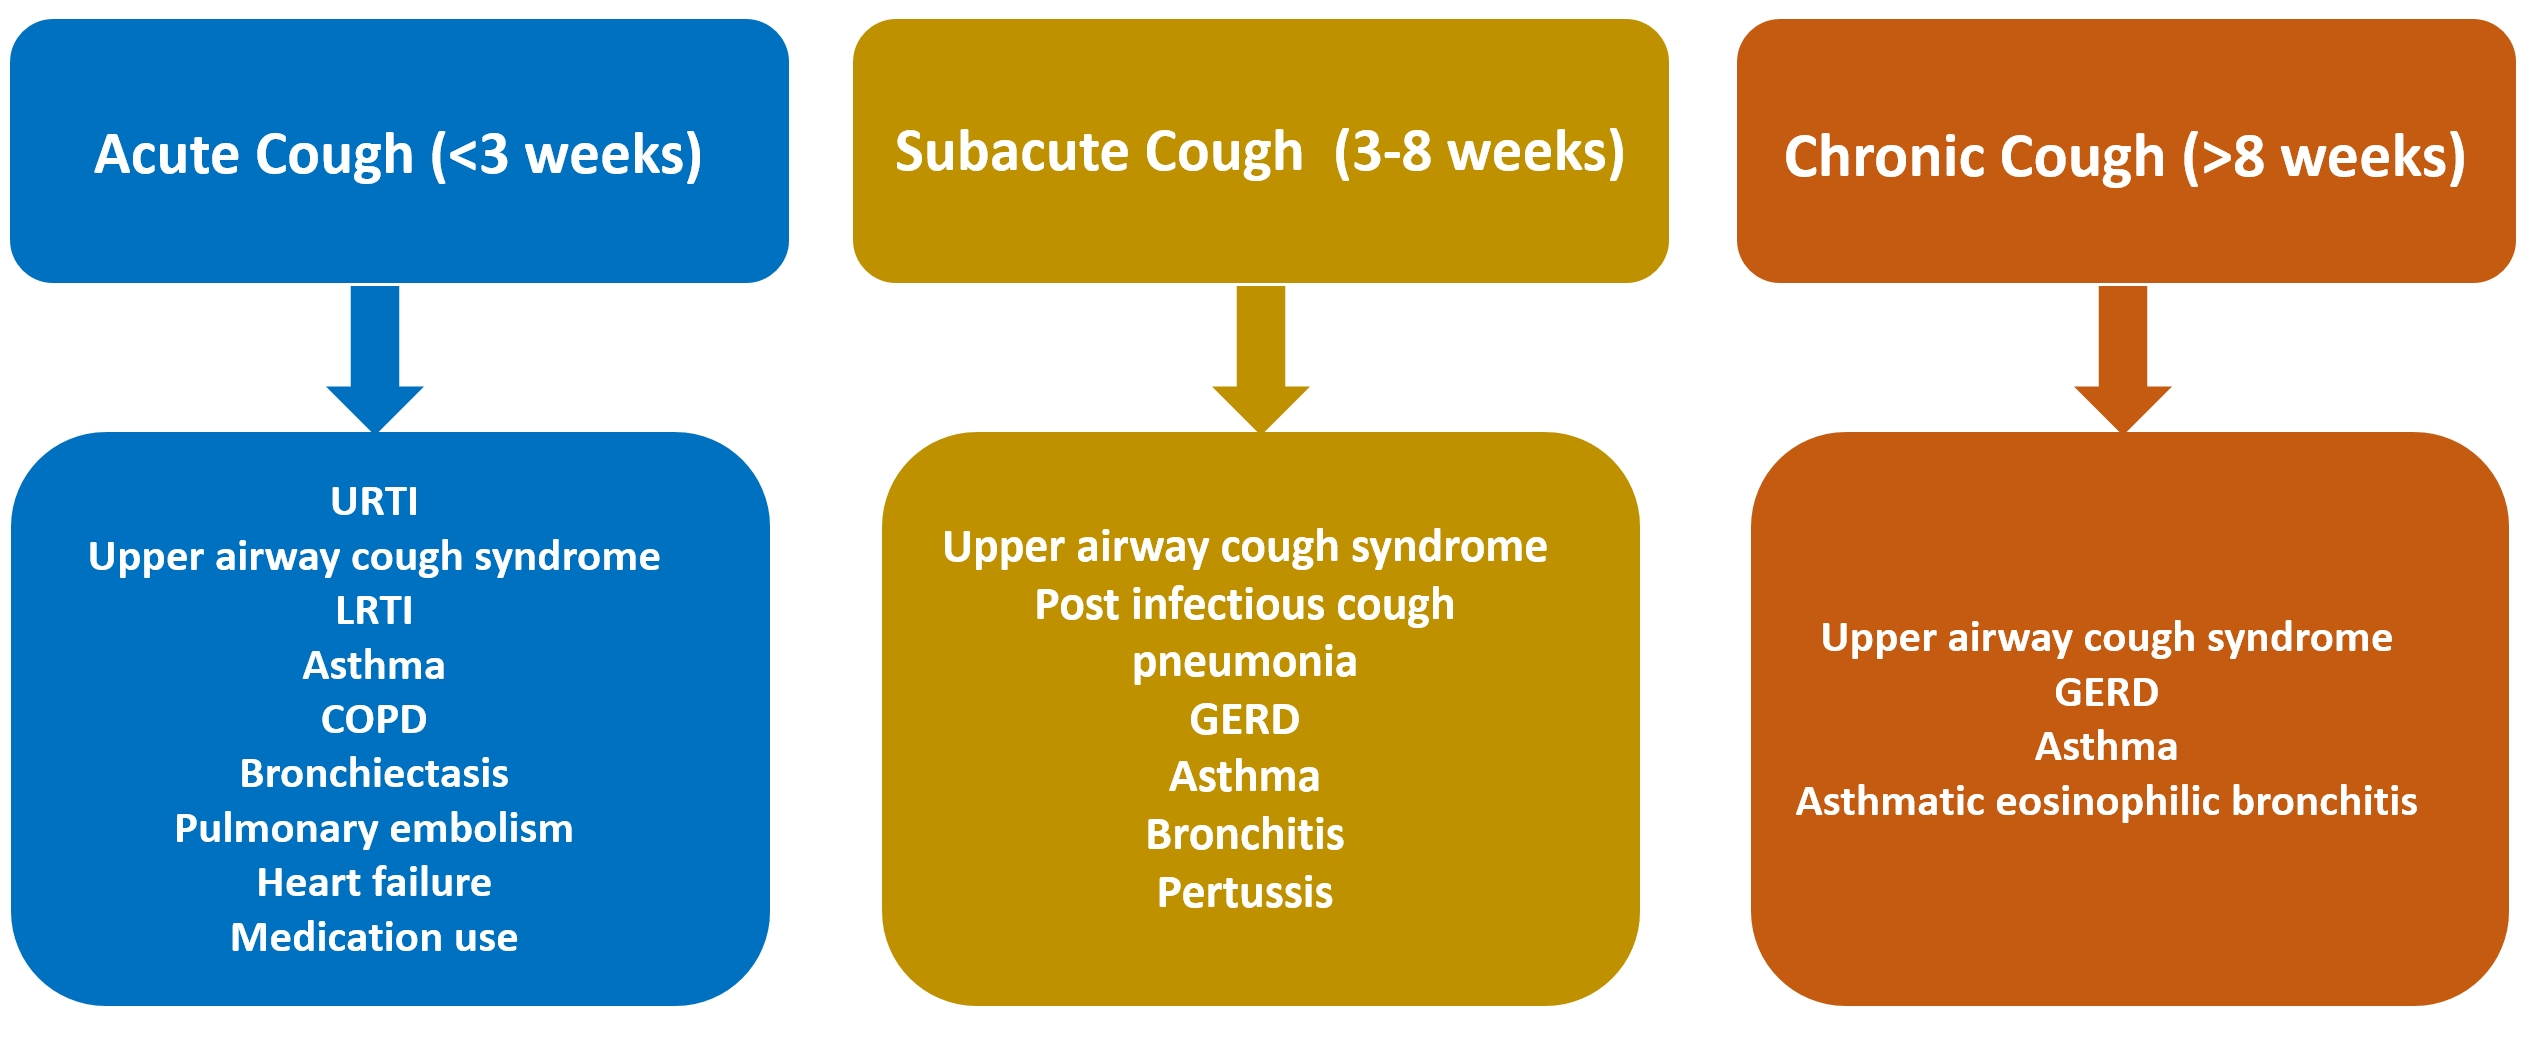 Clinical management of cough